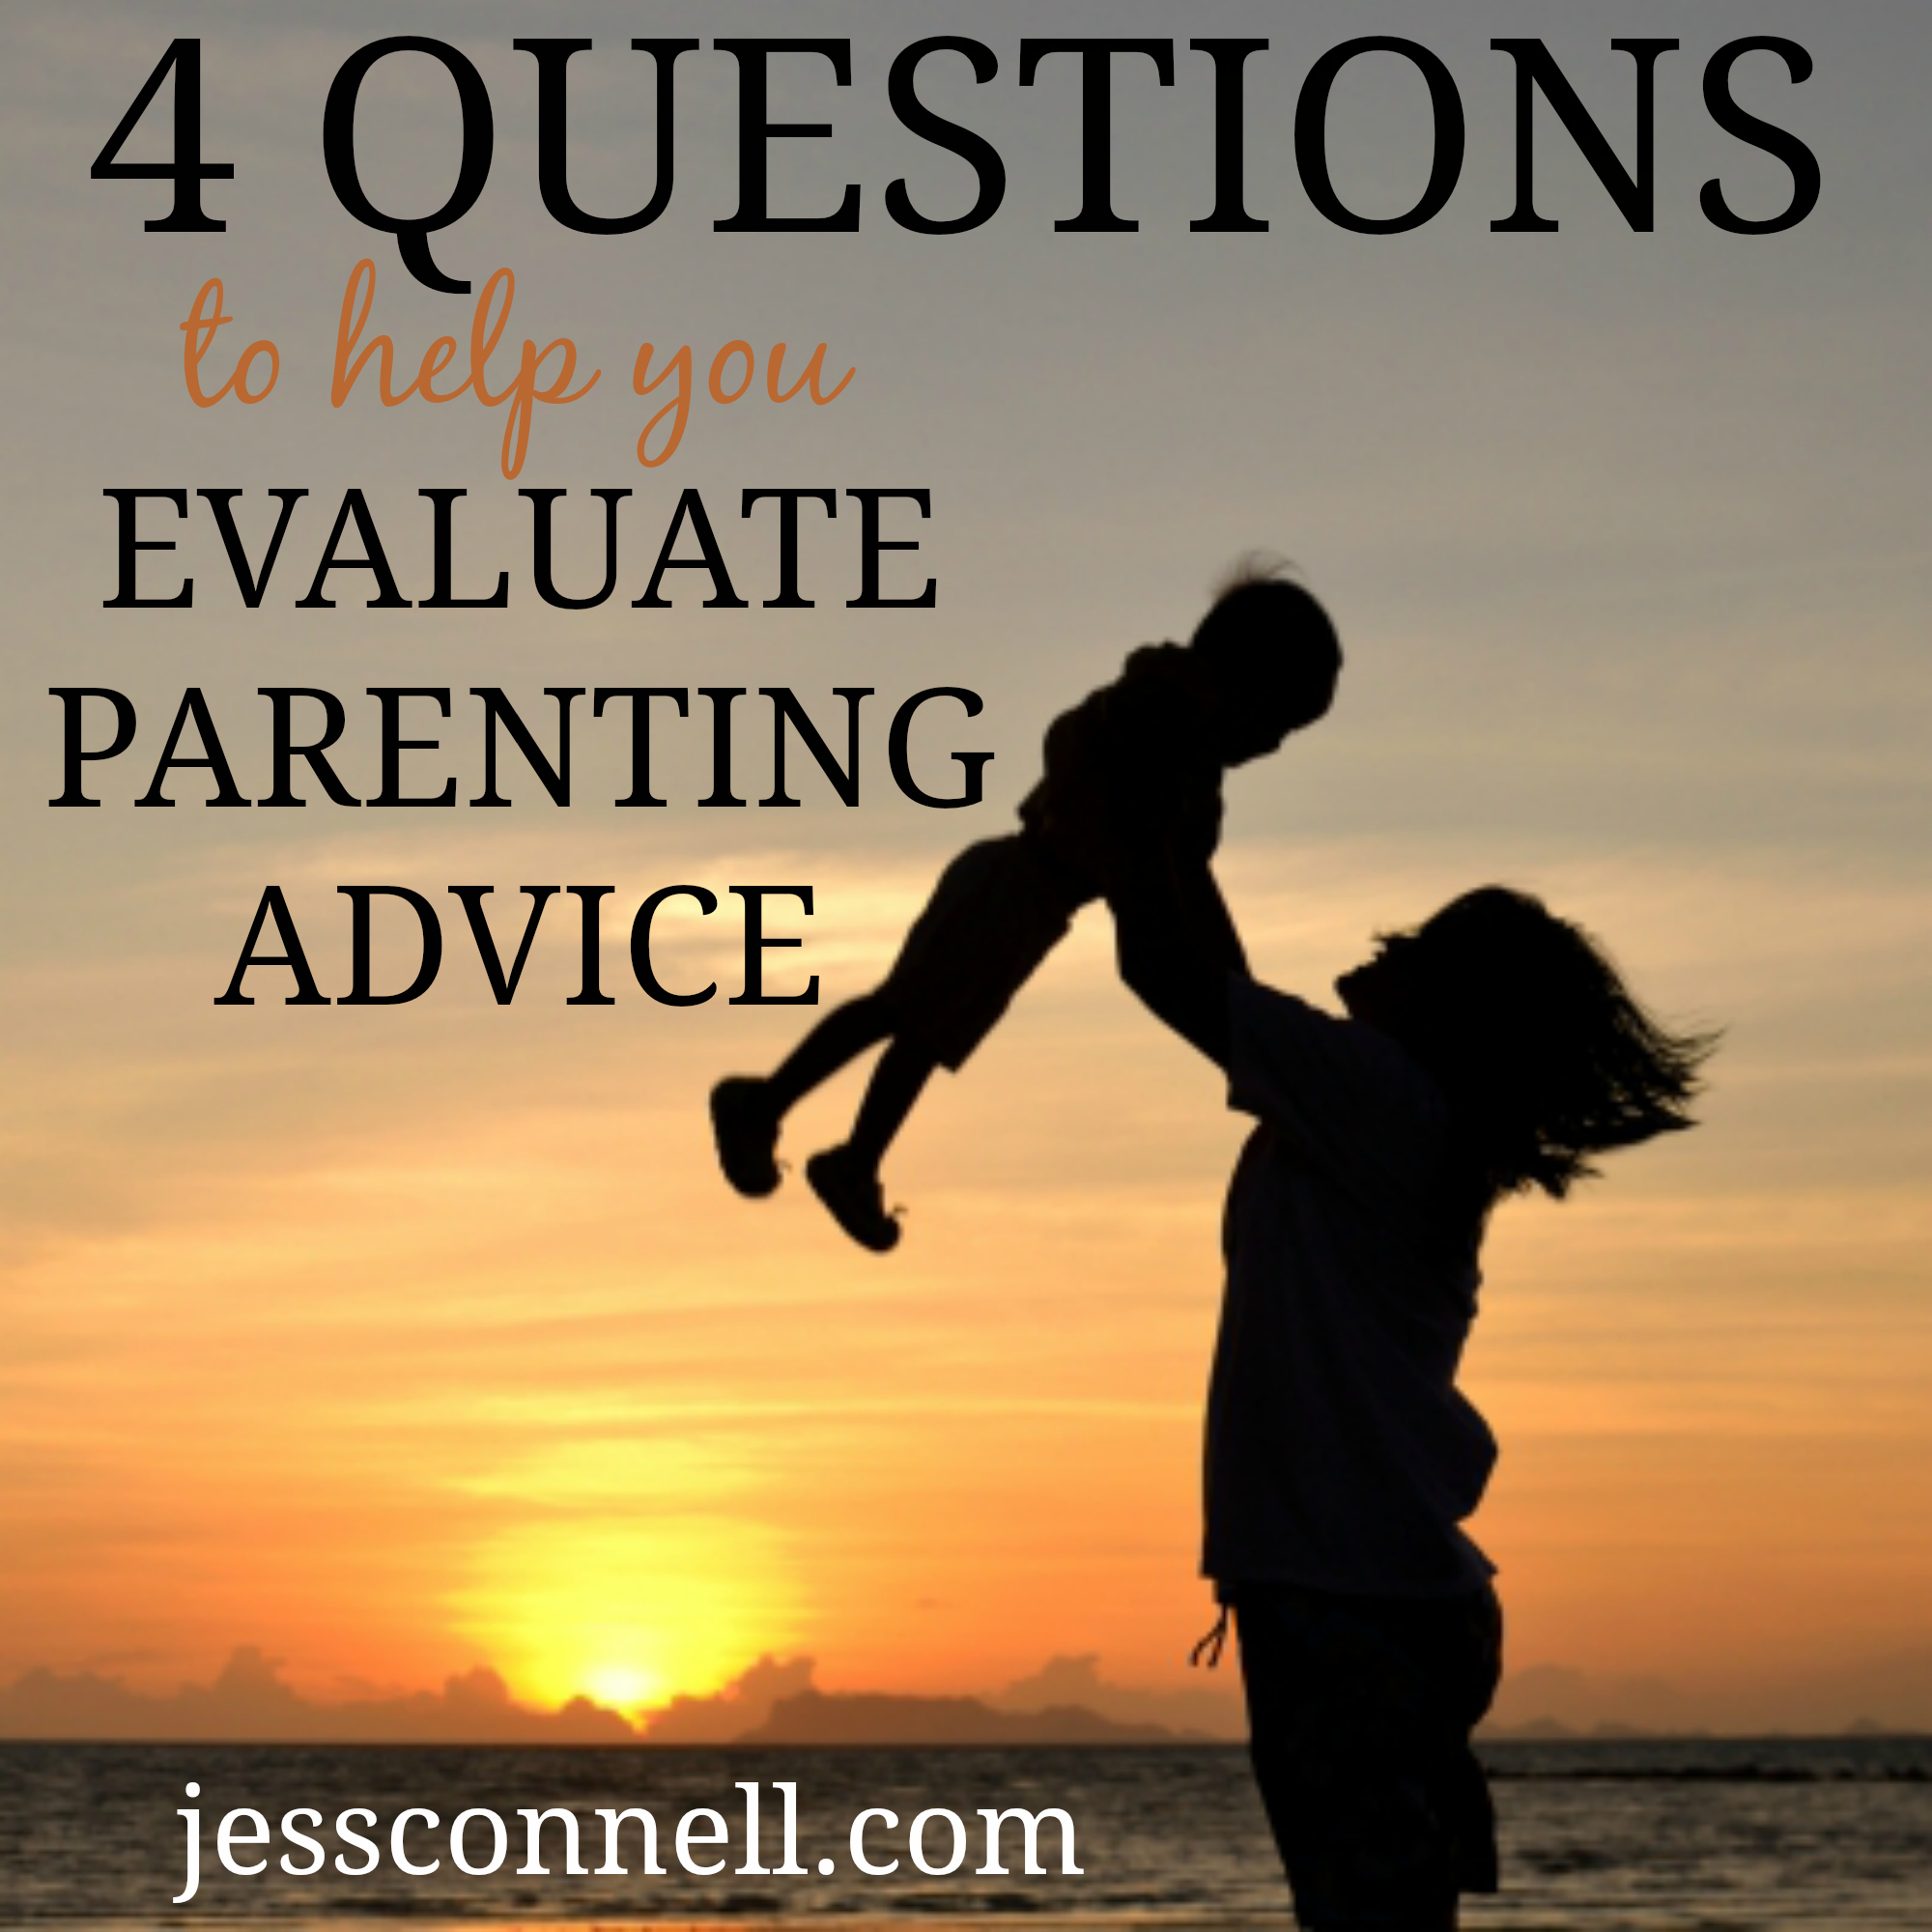 4 Questions to Help You Evaluate Parenting Advice